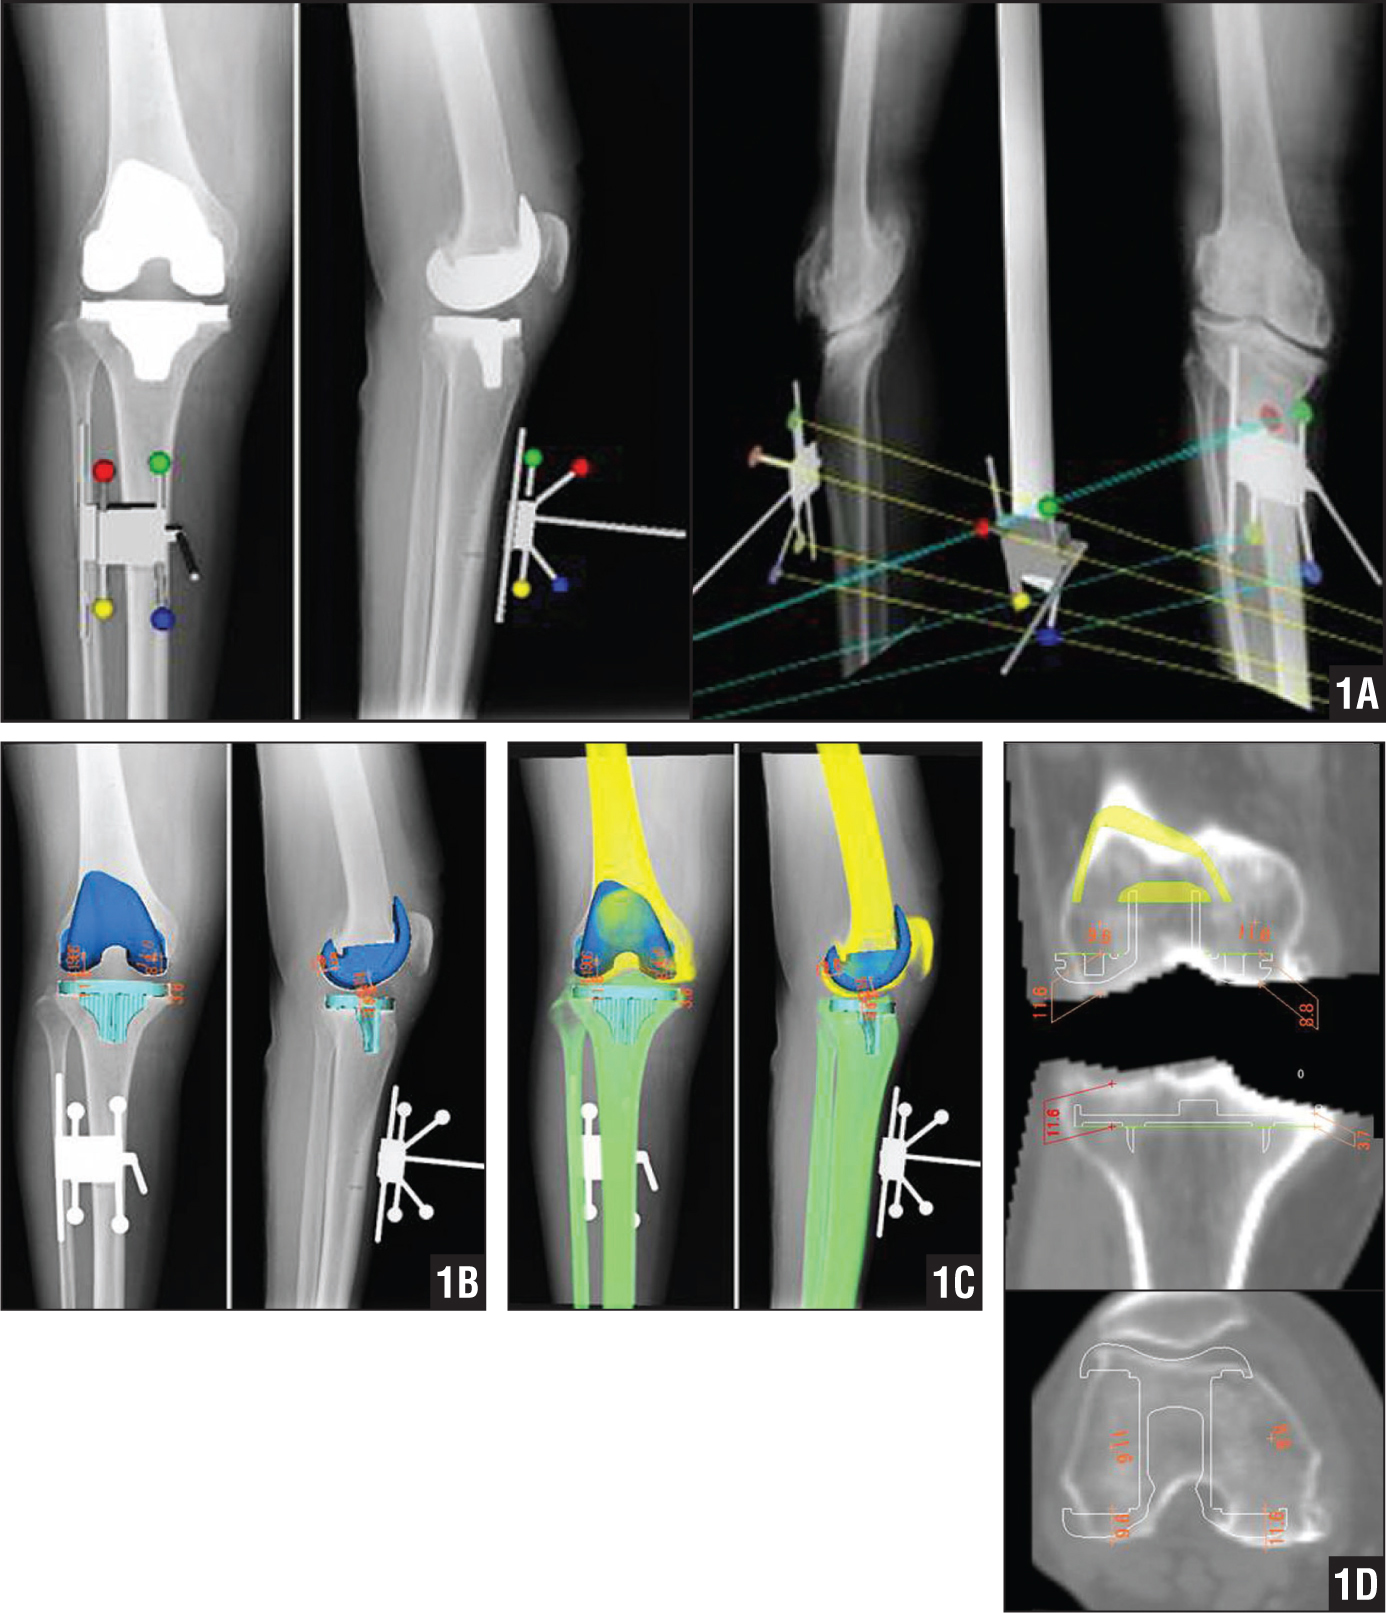 A 3-dimensional marker was attached on the surface of the patient's lower leg, and marker sihouettes were used on the images to 3-dimensionally couple the 2 radiographic images (A). Implanted components were matched to the images using a computer-aided design program (B). Computed tomography (thickness, 2.5 mm) images were matched with the coupled radiographic images (C). The thickness of each part of the bone cut was measured on computed tomography (D).